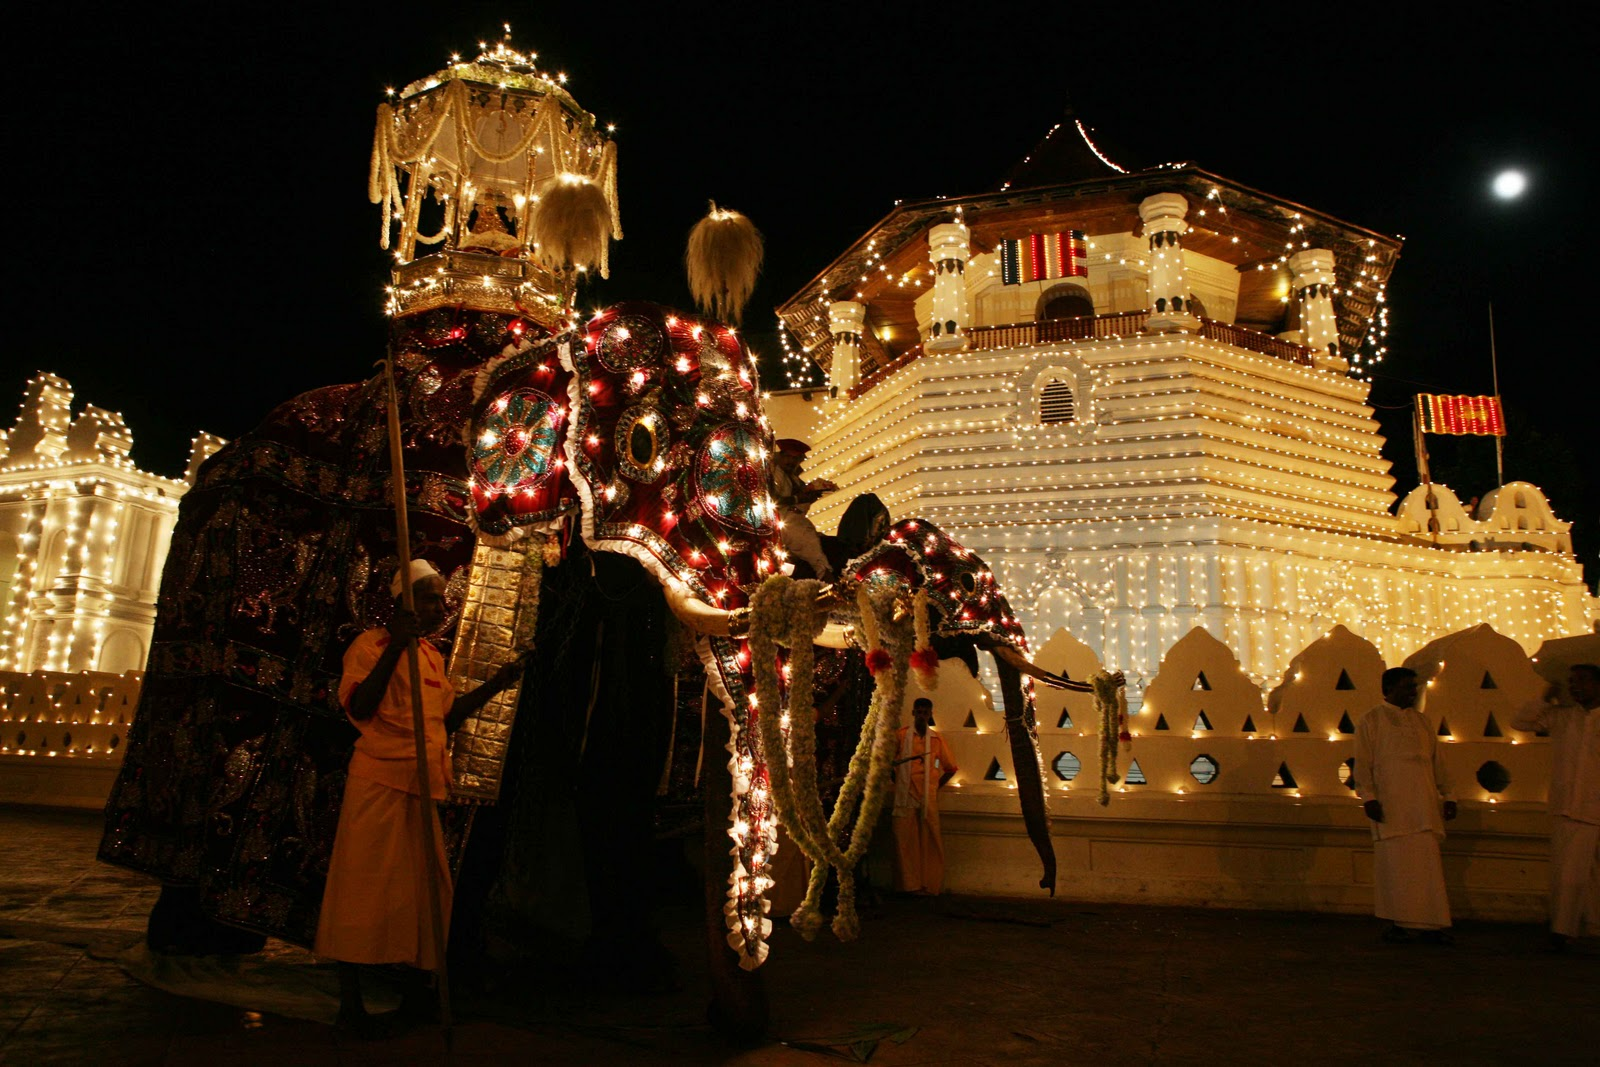 Temple of Tooth relic during the Essala Perahera, the festival of the Tooth